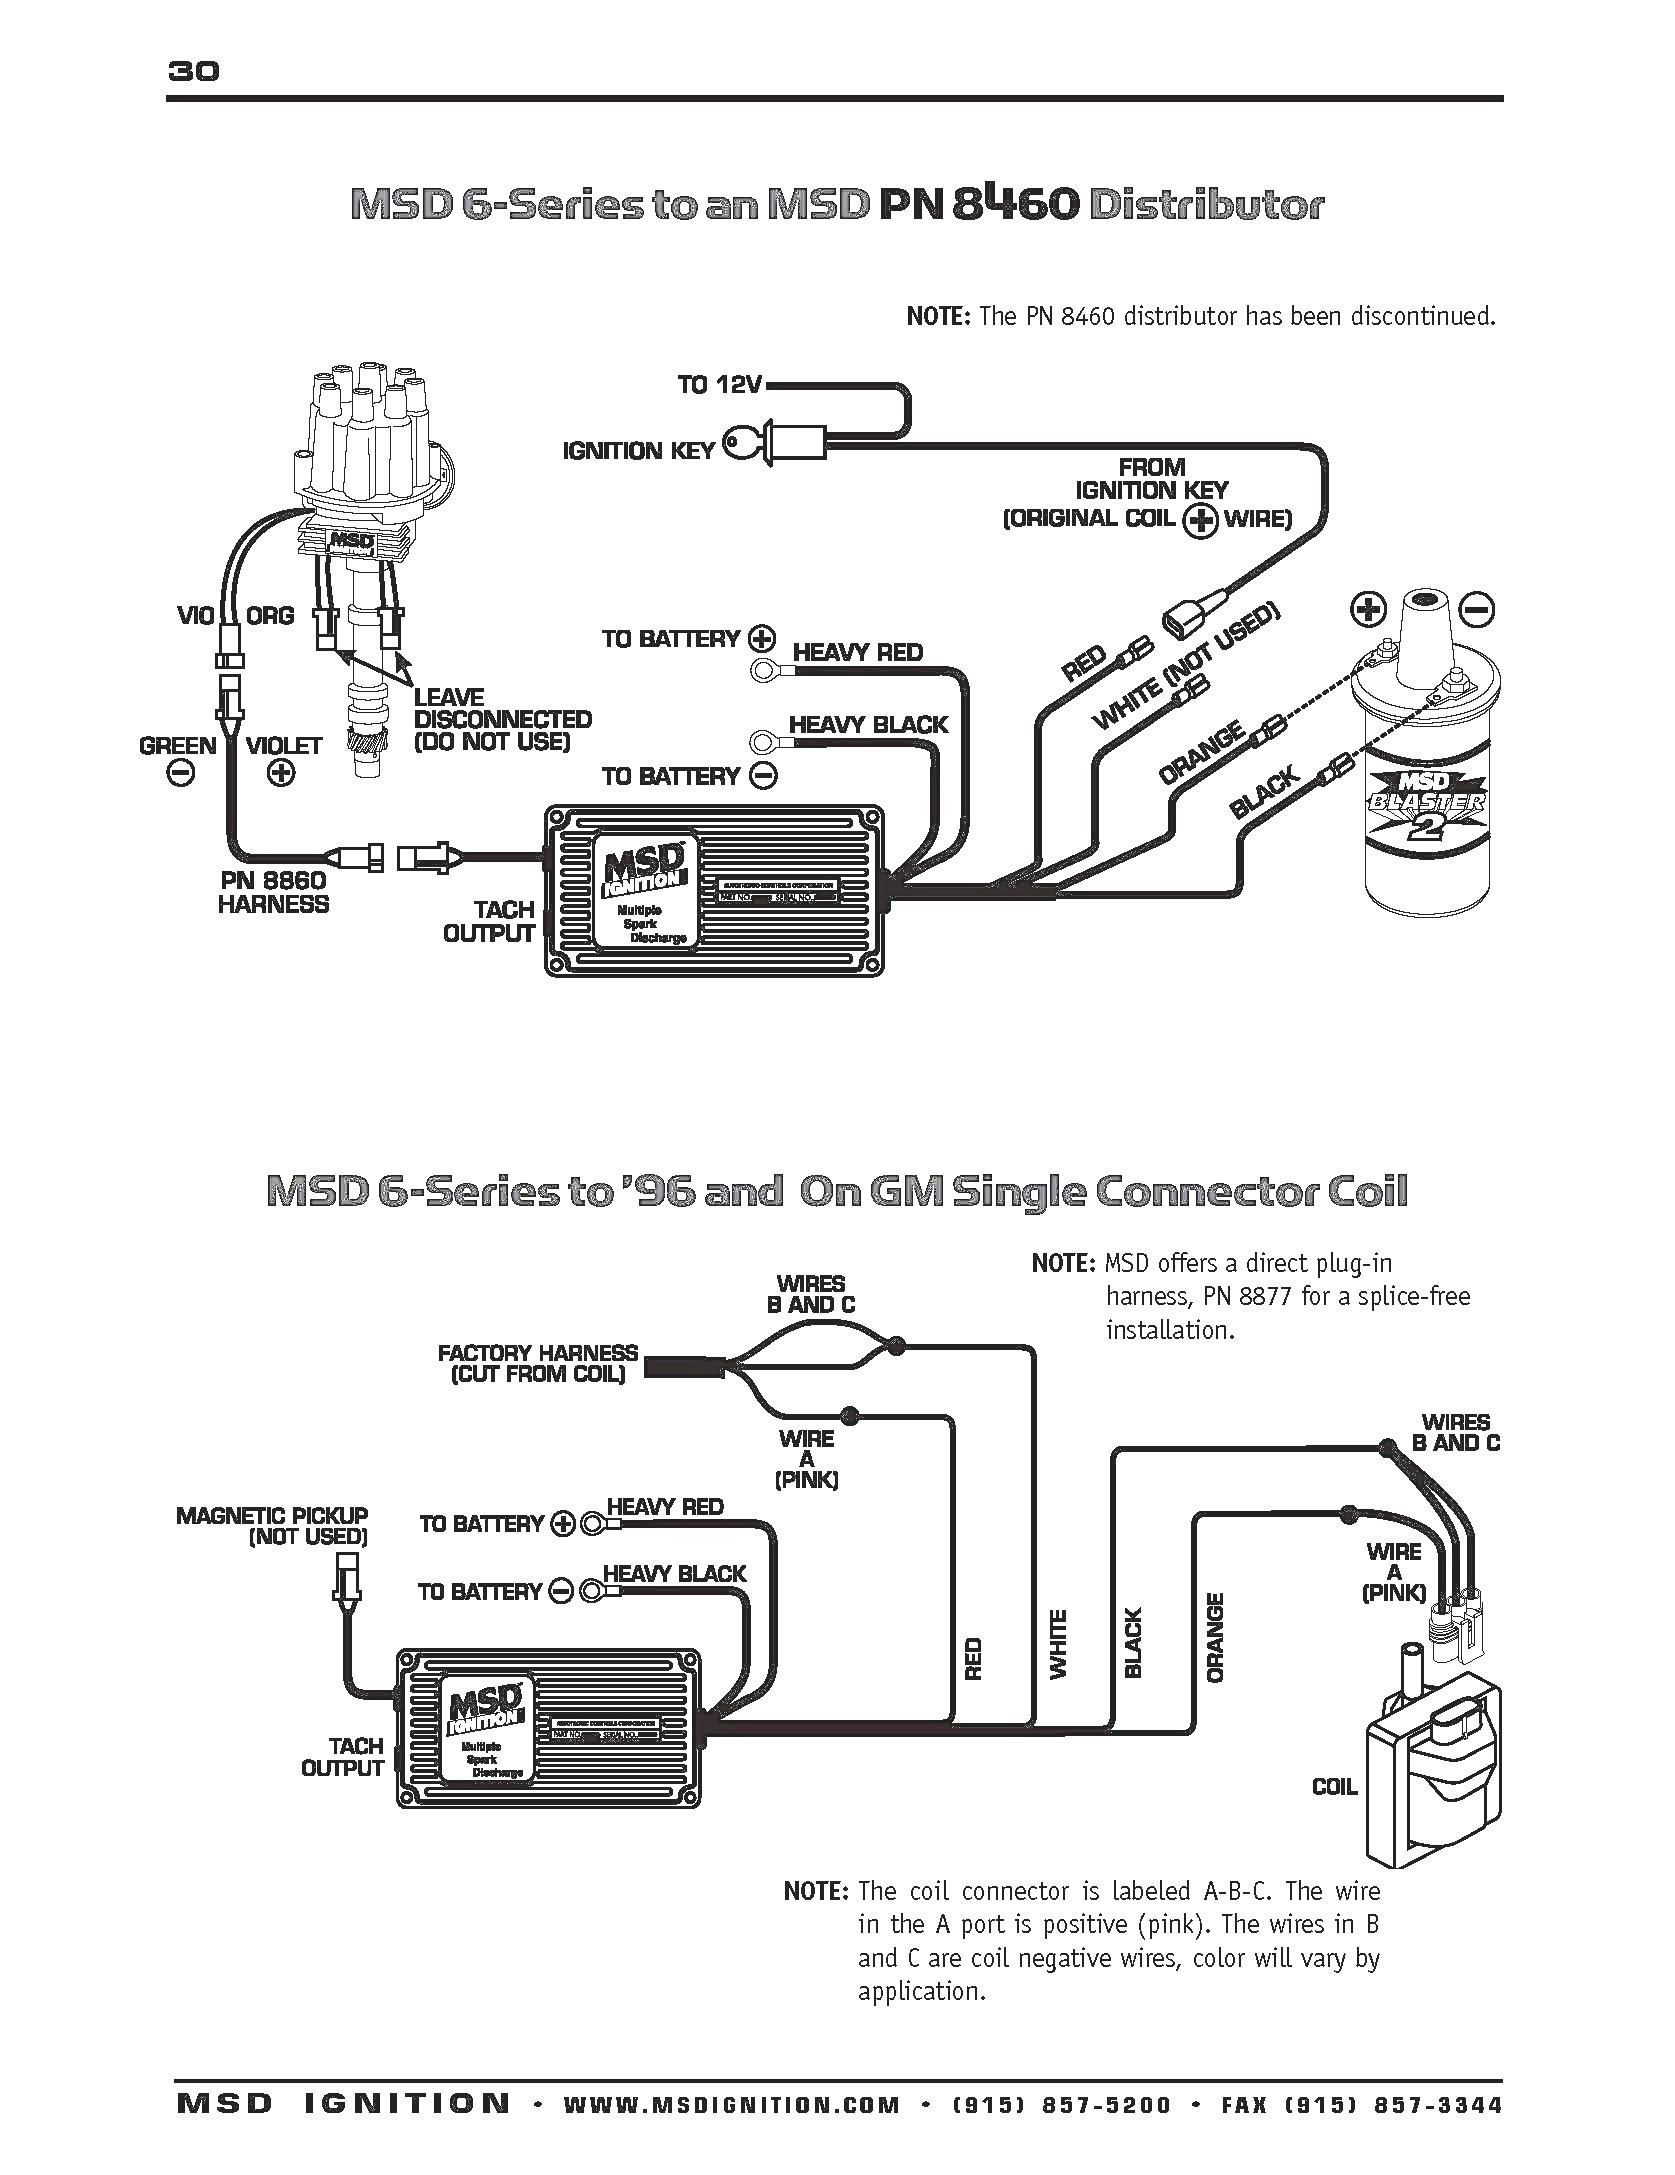 Mallory Ignition Wiring Diagram Further Msd Distributor Wiring Diagram